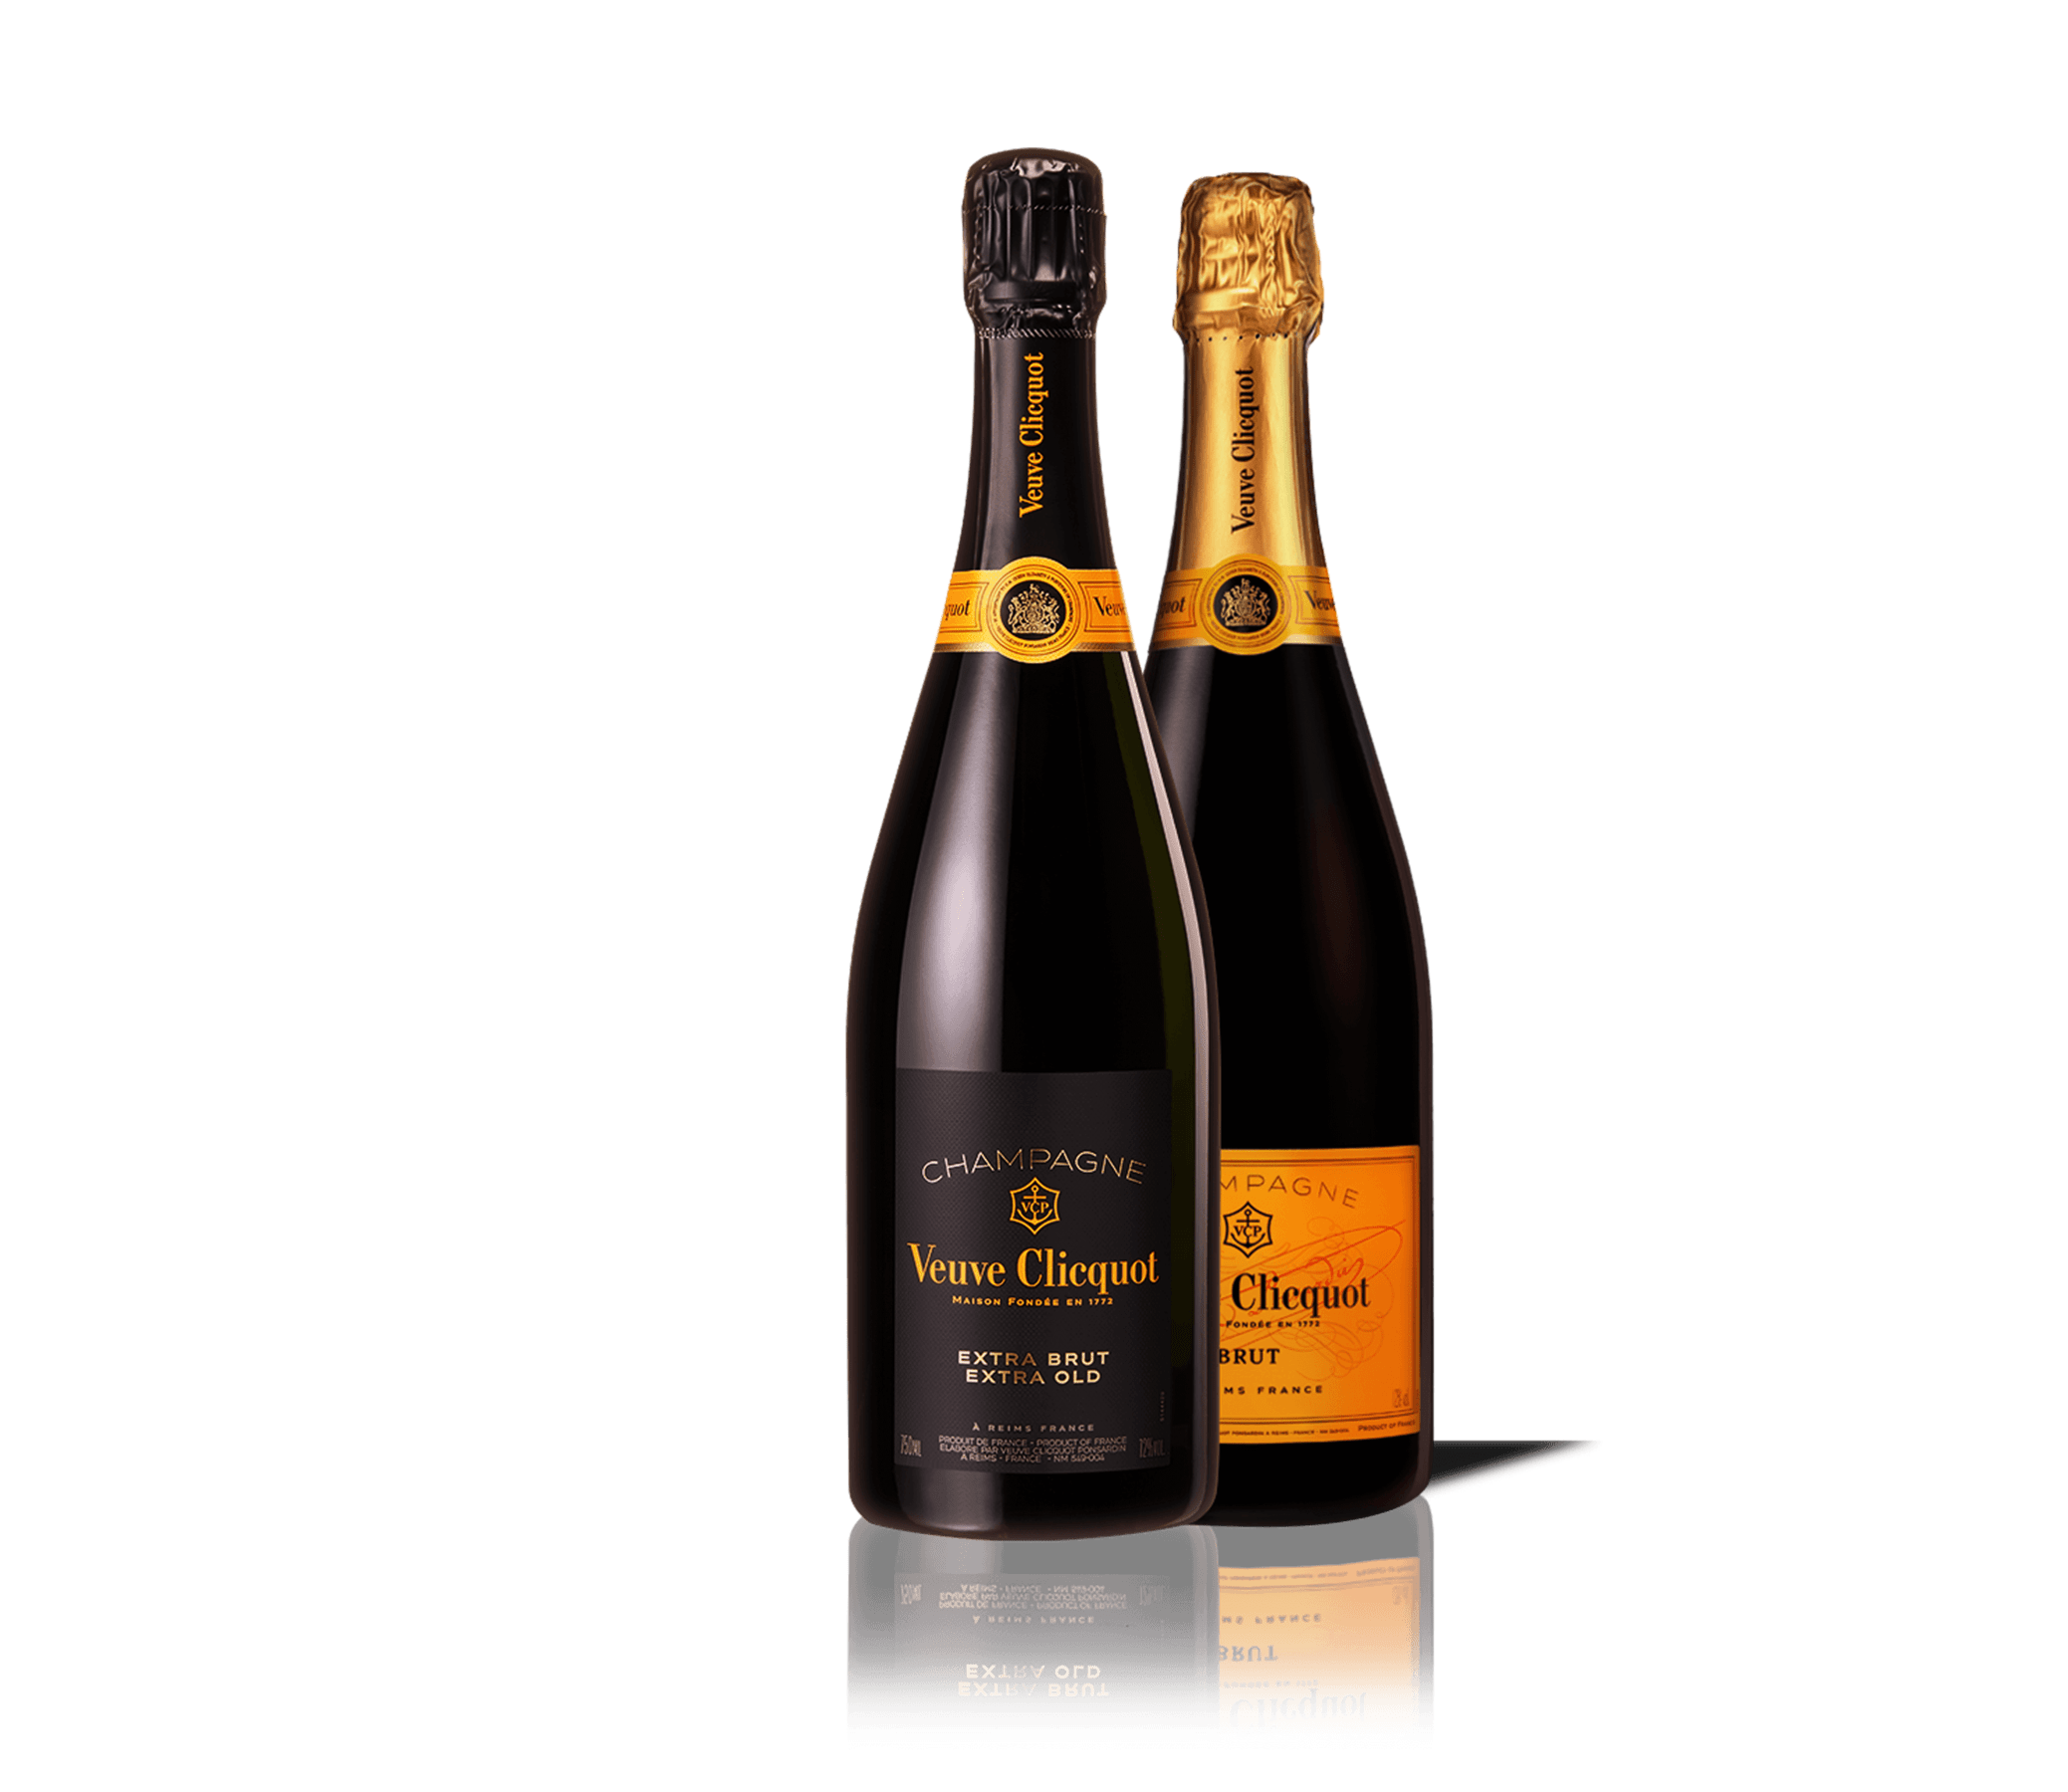 Flasche Veuve Clicquot Champagner Extra Brut Extra Old 1